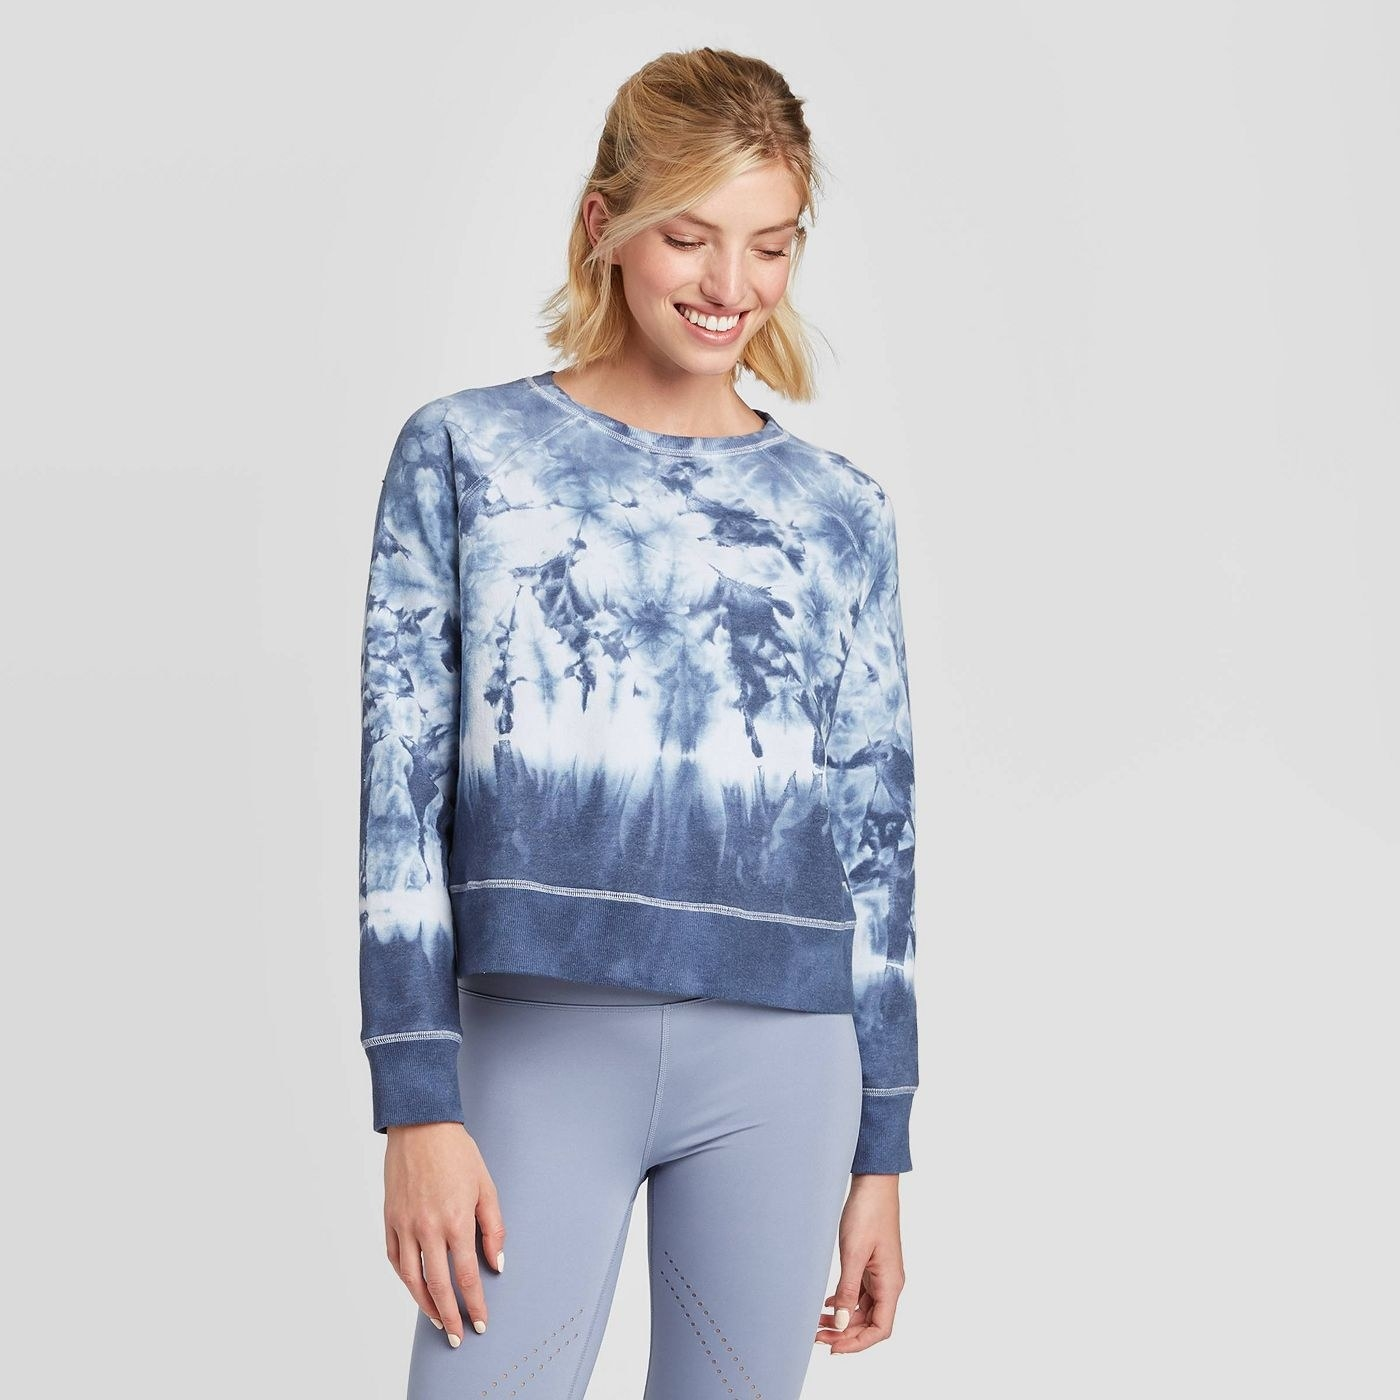 model wearing blue and white tie dye sweater